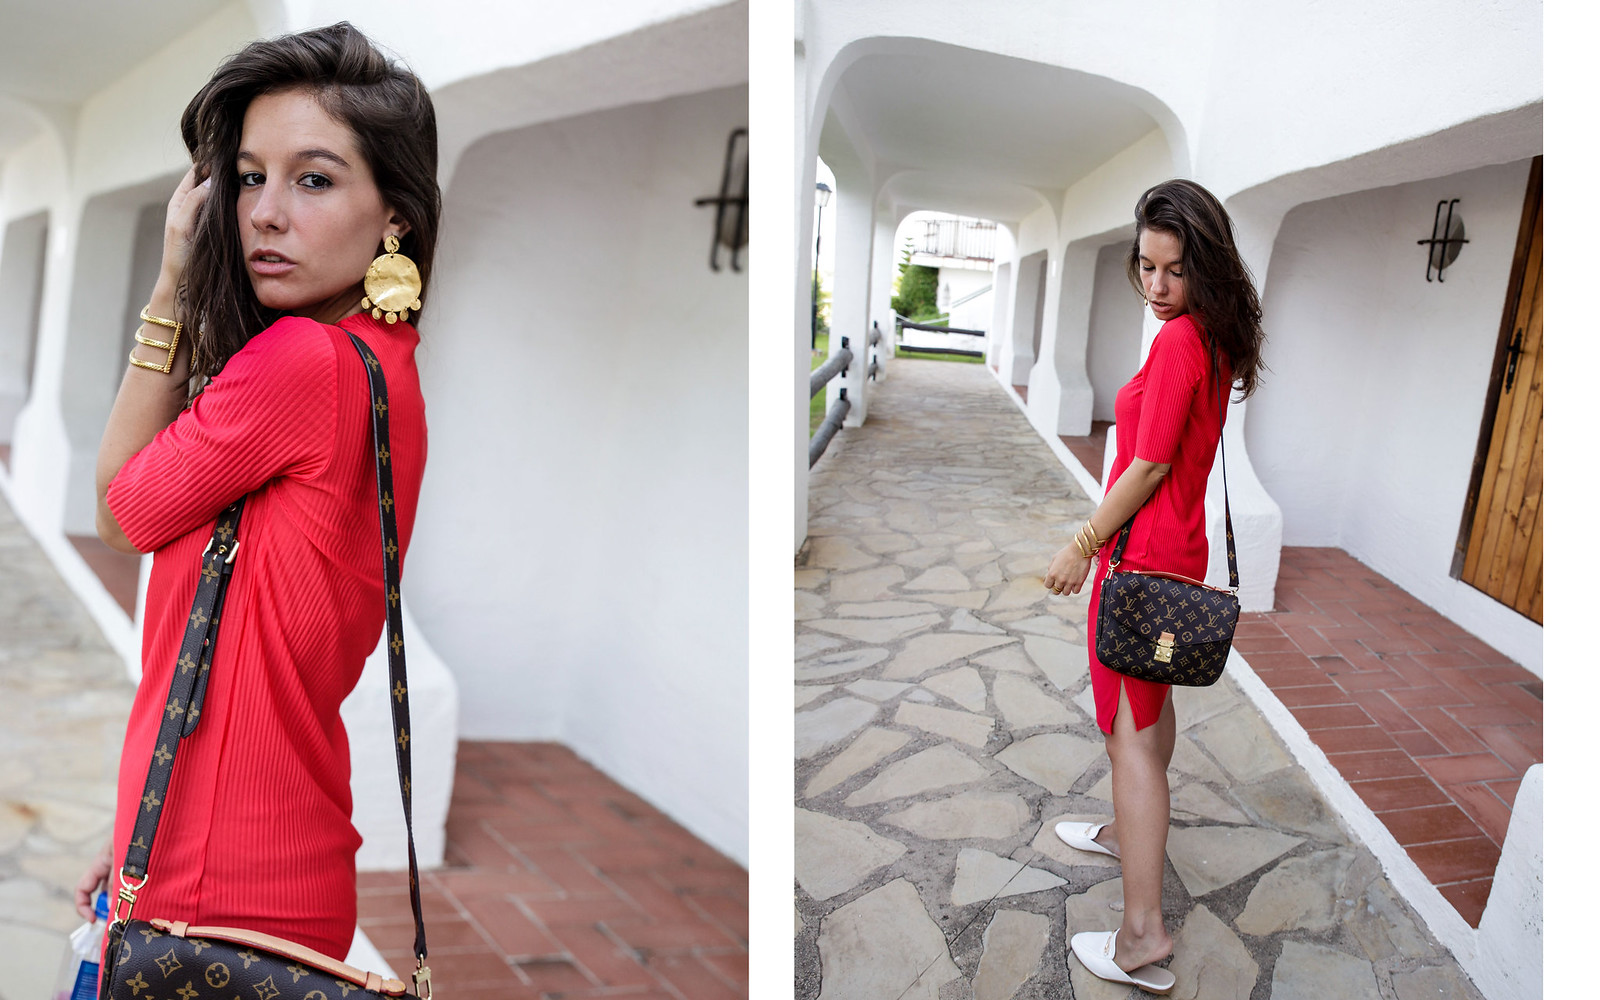 05_red_dress_nakd_code_promocional_off_blogger_theguestgirl_lady_in_red_glam_style_barcelona_vestido_rojo_perfecto